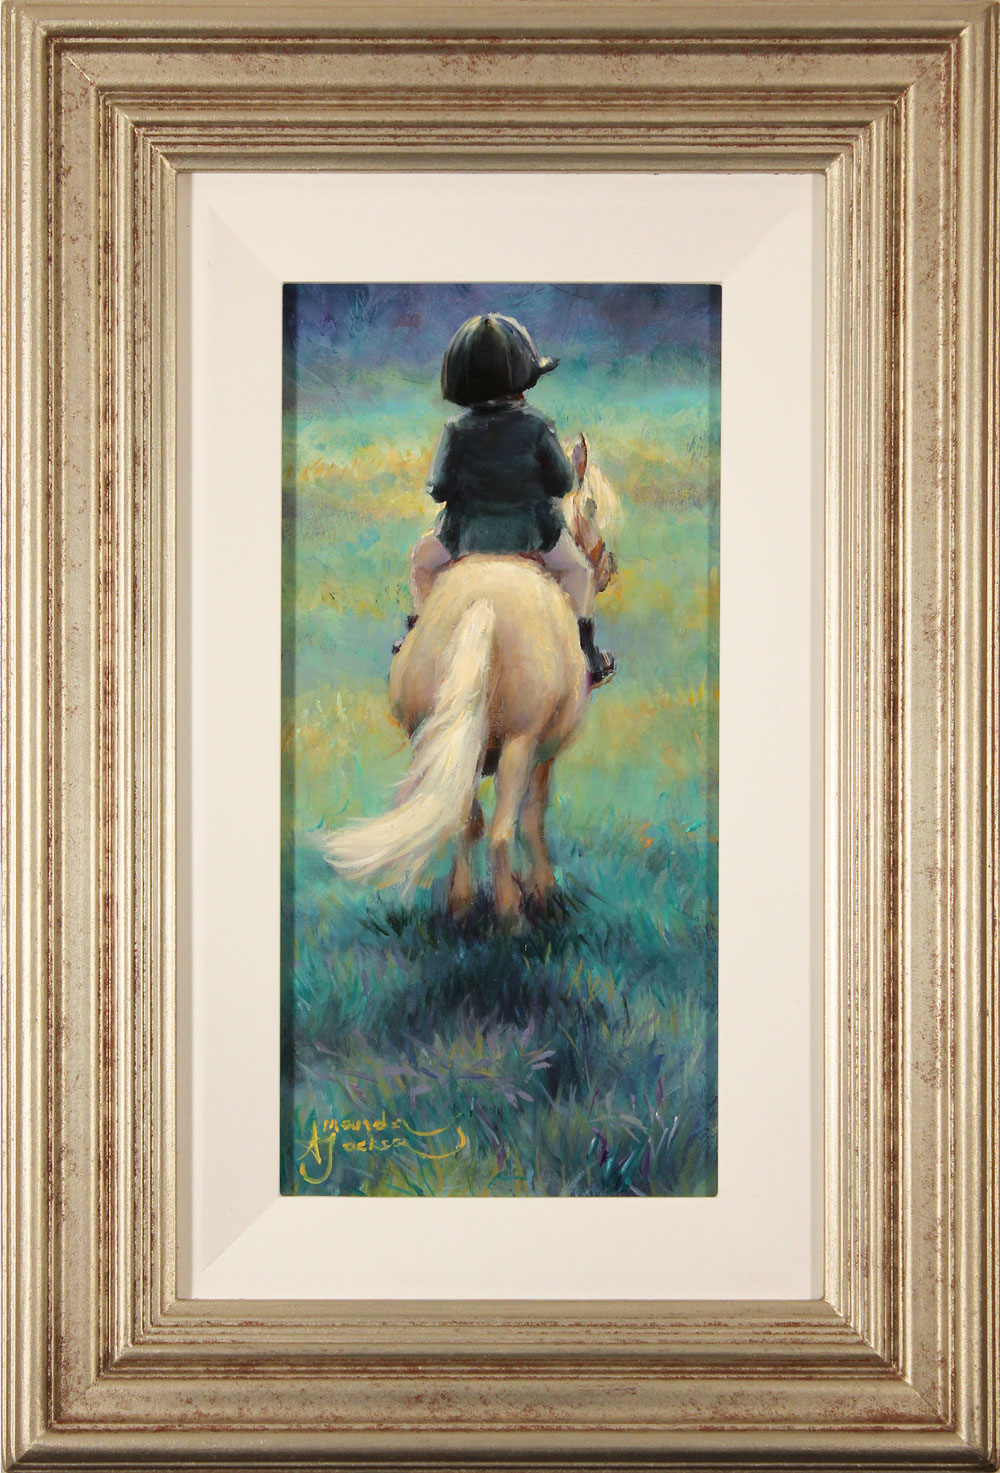 Amanda Jackson, Original oil painting on panel, My Little Pony, click to enlarge